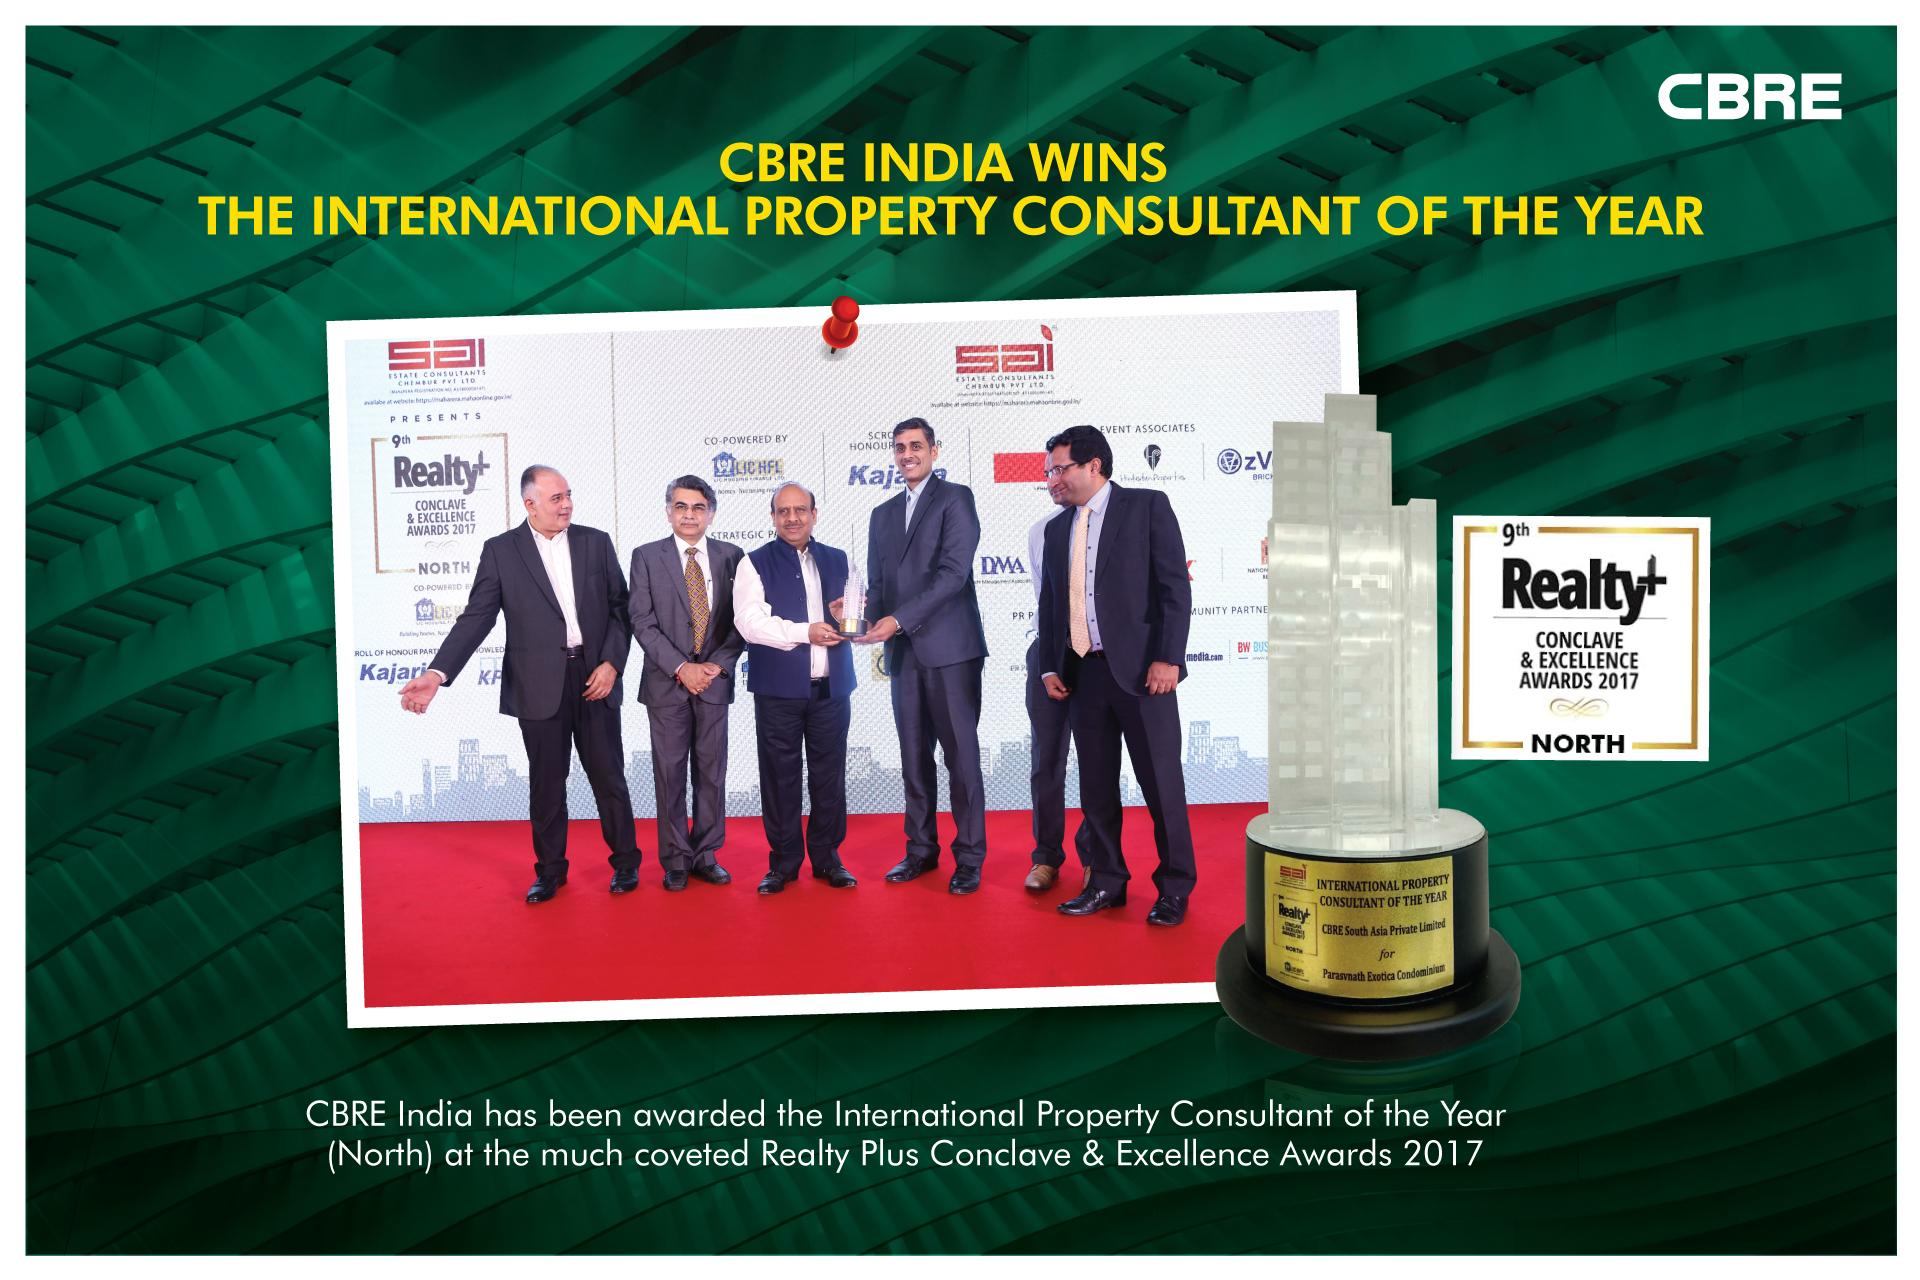 CBRE India awarded International Property Consultant of the Year at Realty Plus Conclave Excellence Awards 2017